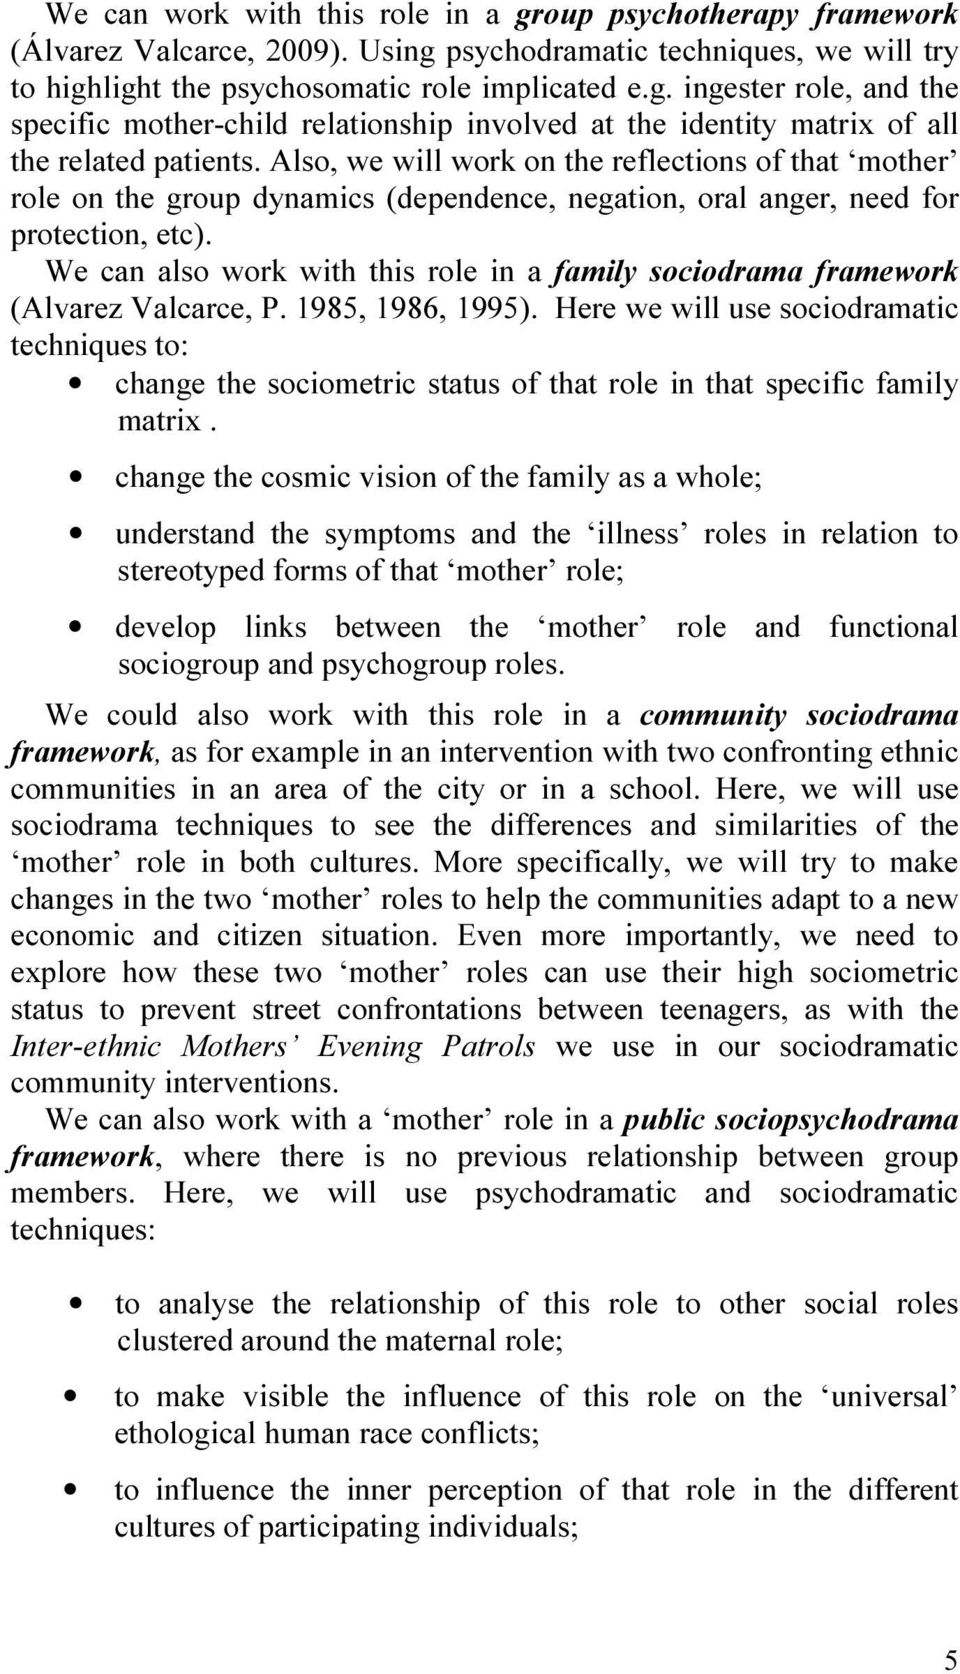 We can also work with this role in a family sociodrama framework (Alvarez Valcarce, P. 1985, 1986, 1995).